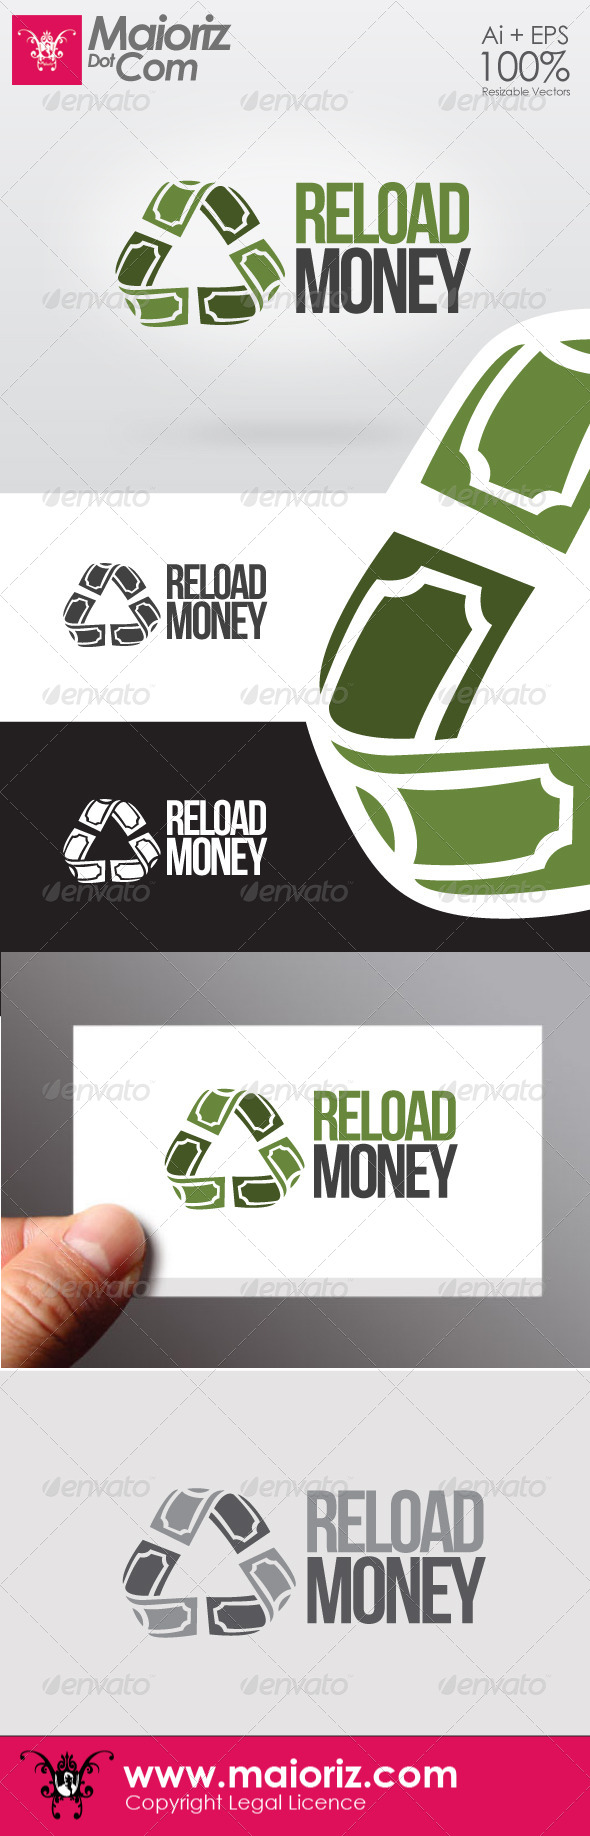 Reload Money Logo - Vector Abstract